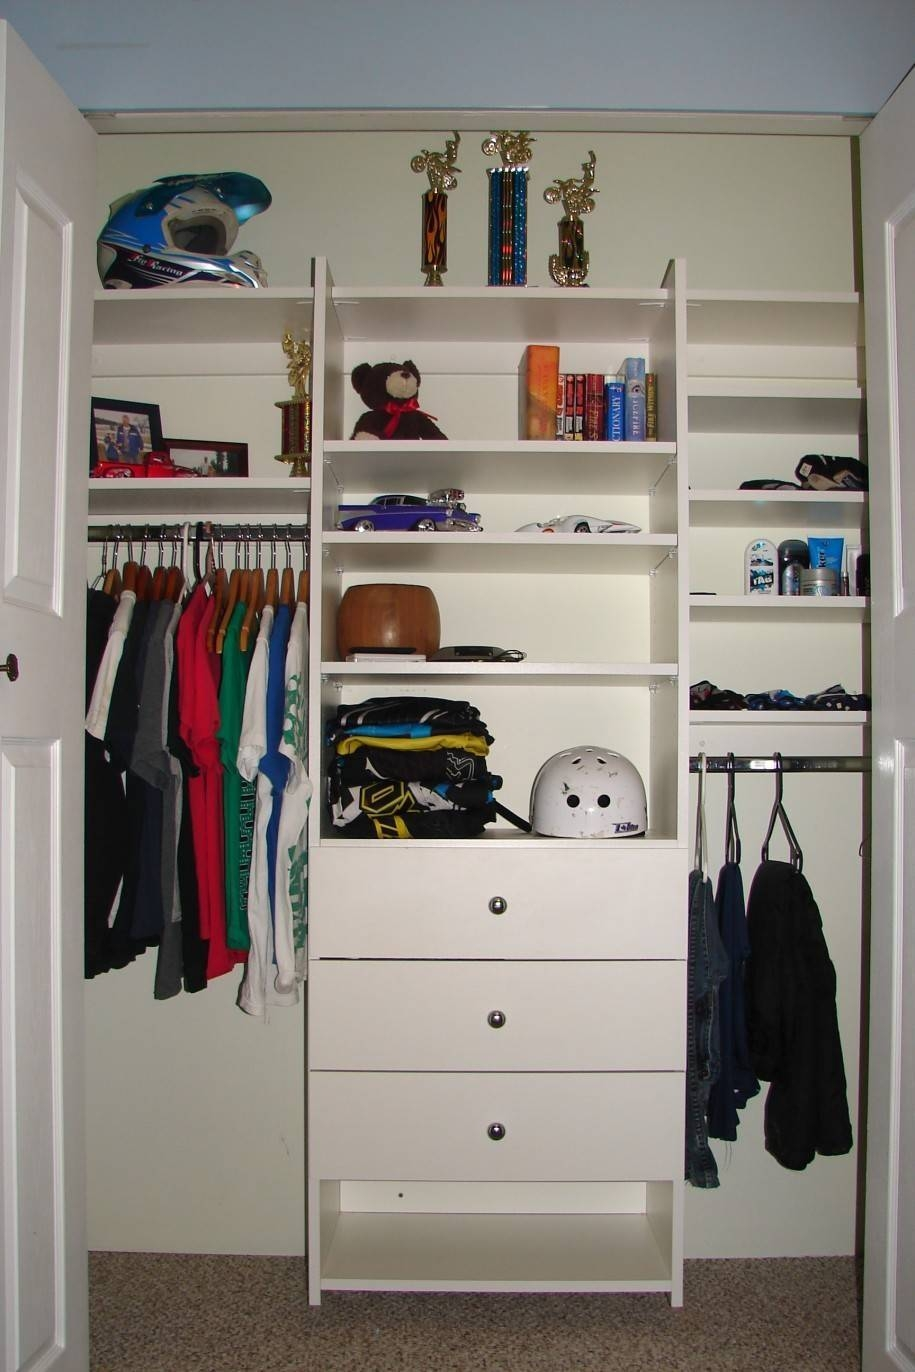 30 Best Childrens Wardrobes With Drawers And Shelves throughout Single Wardrobe With Drawers And Shelves (Image 3 of 30)